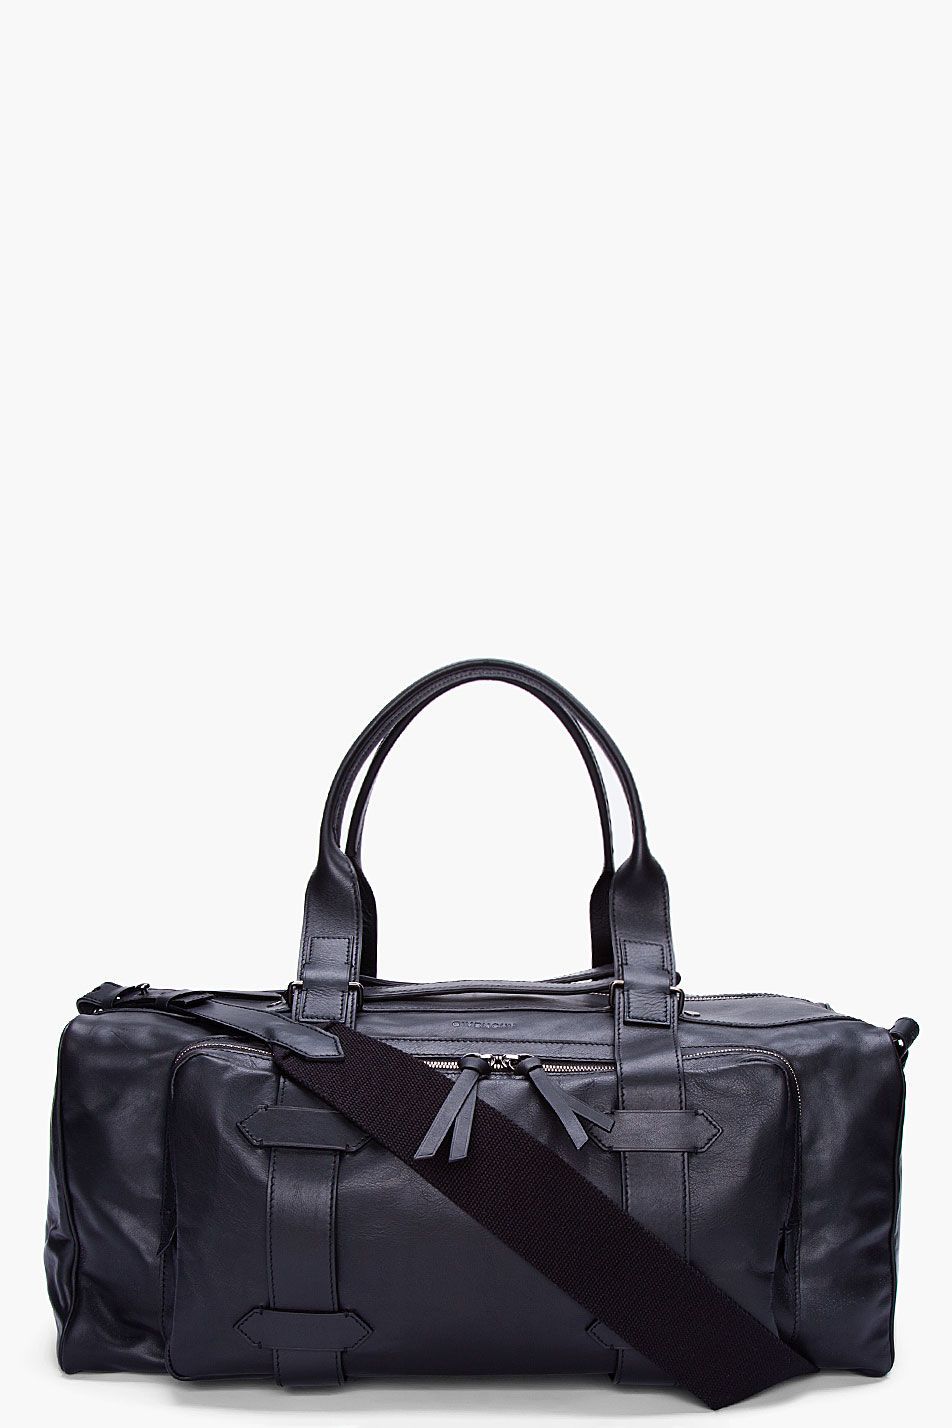 givenchy black leather carry all duffle bag in black for